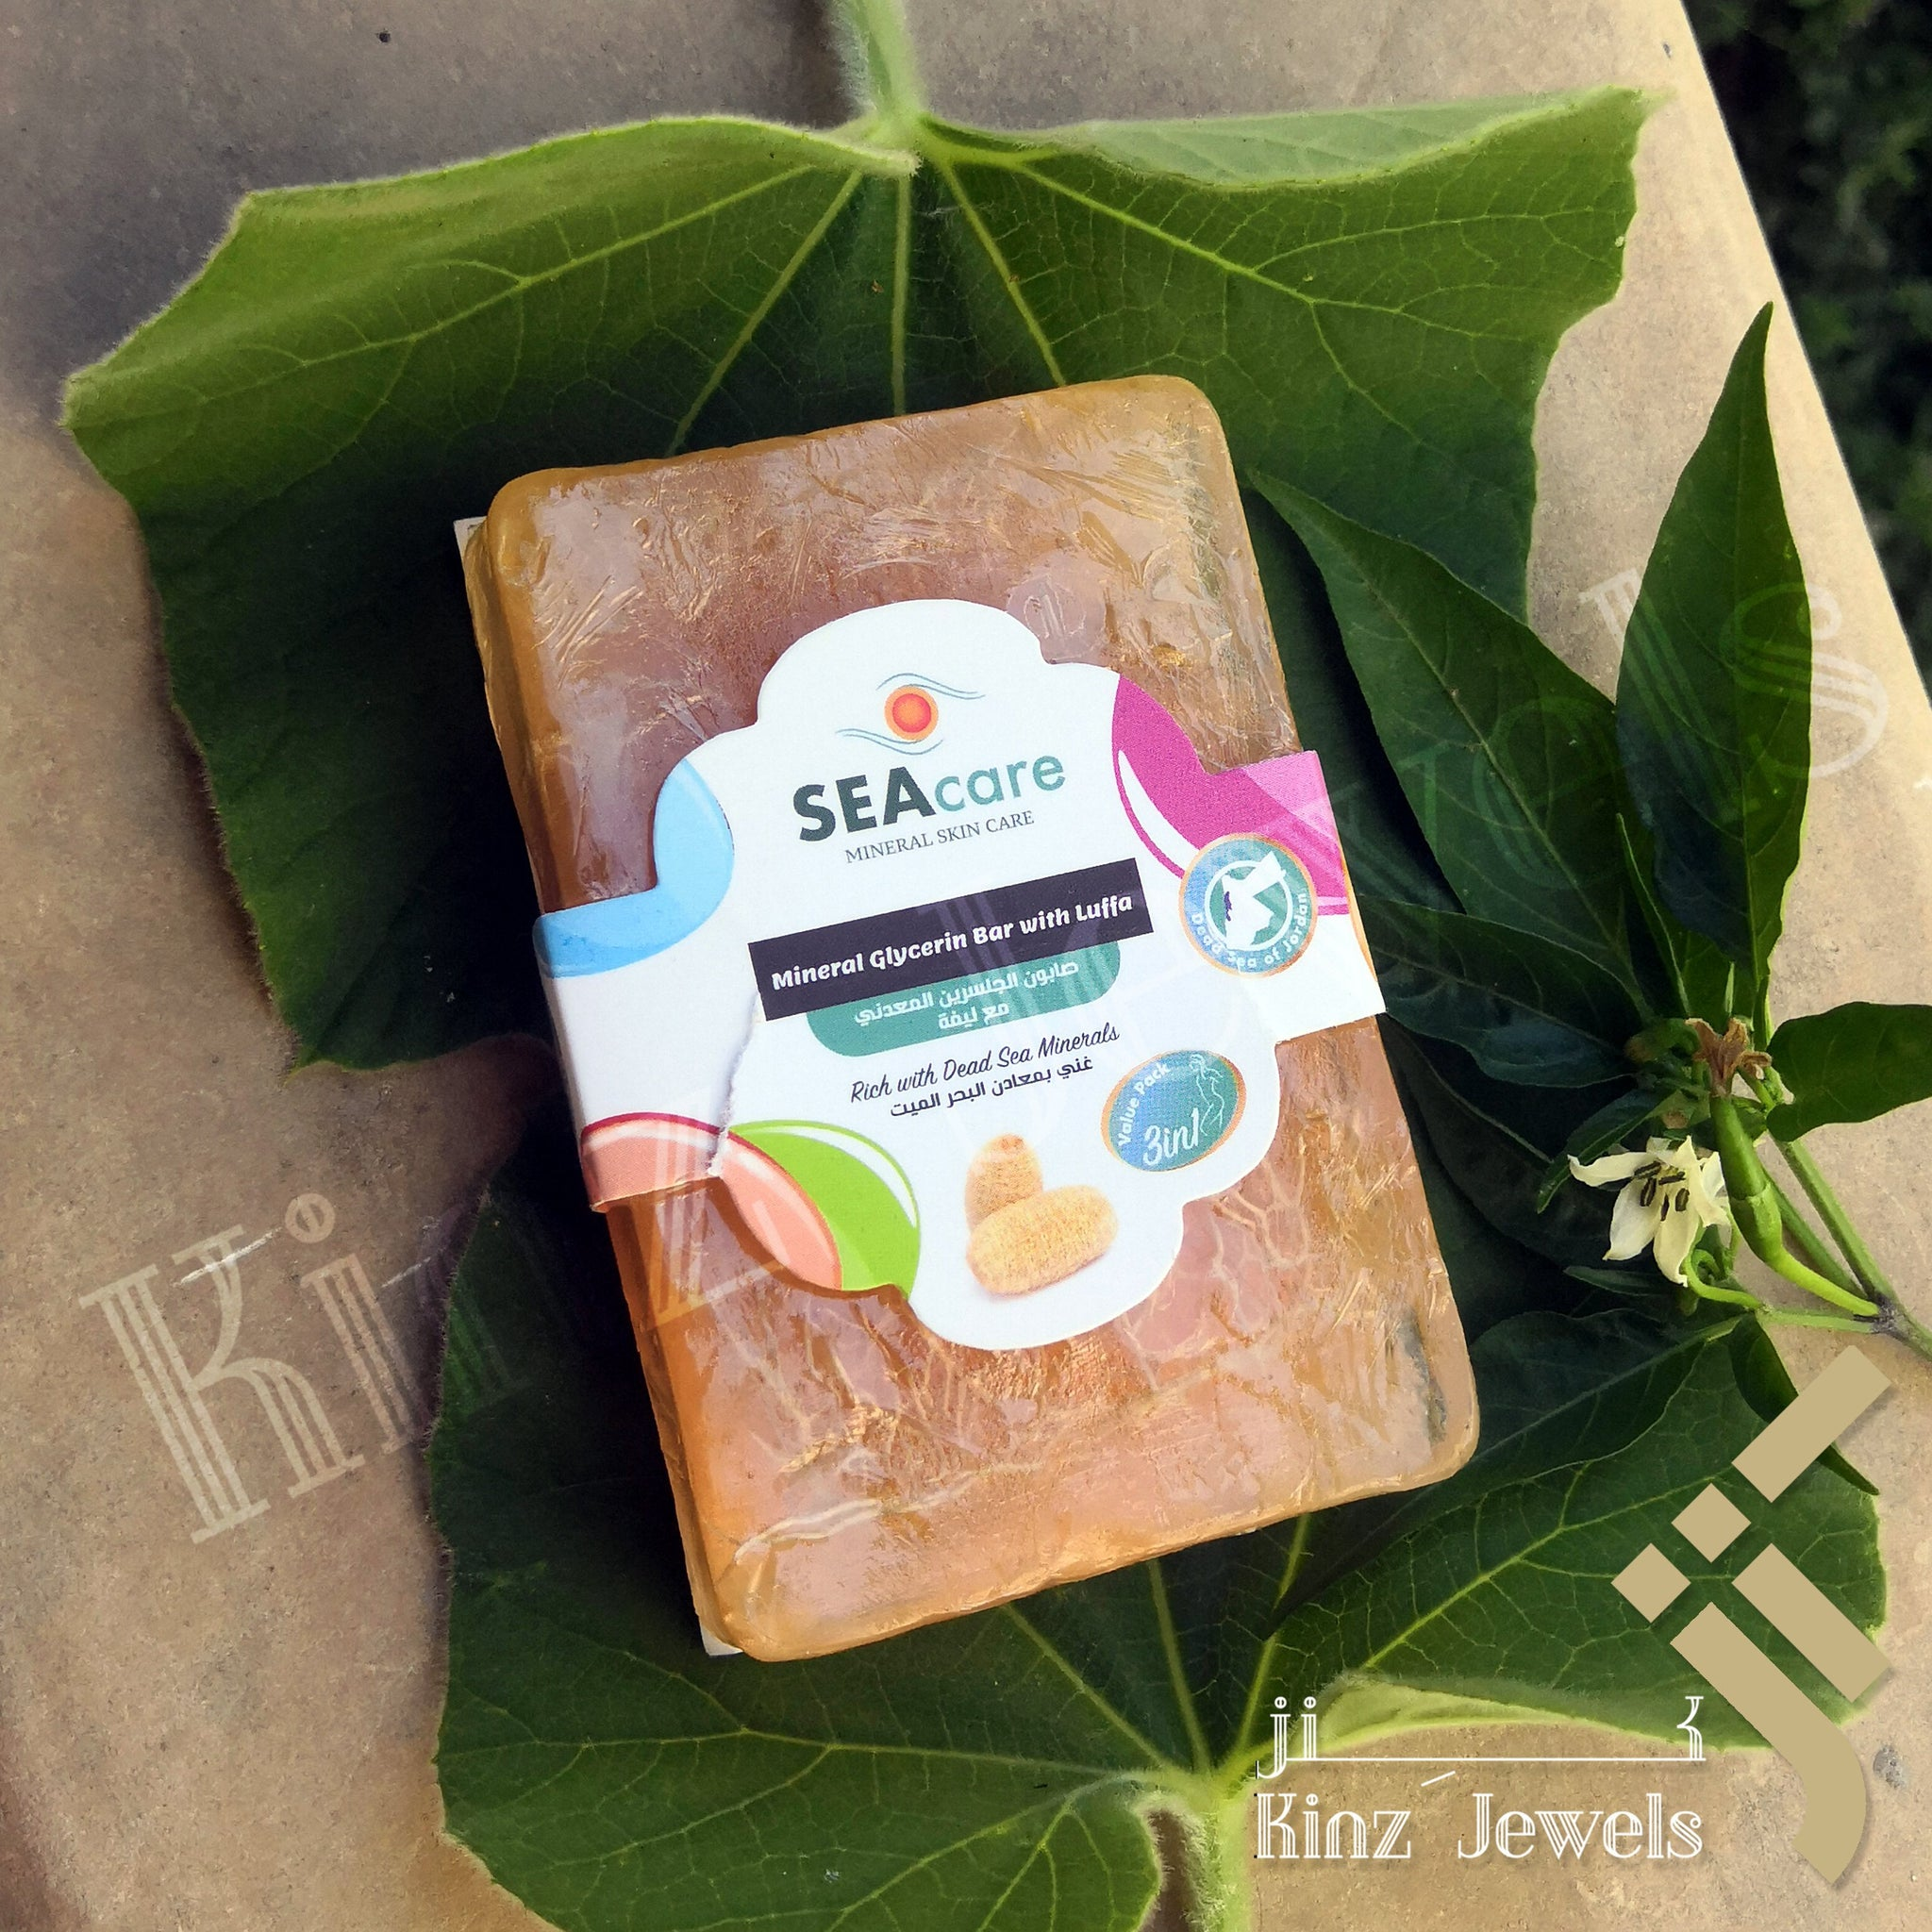 kinzjewels - Strong Flowers Dead Sea Minerals Glycerin Cleansing Bar with Natural Luffa